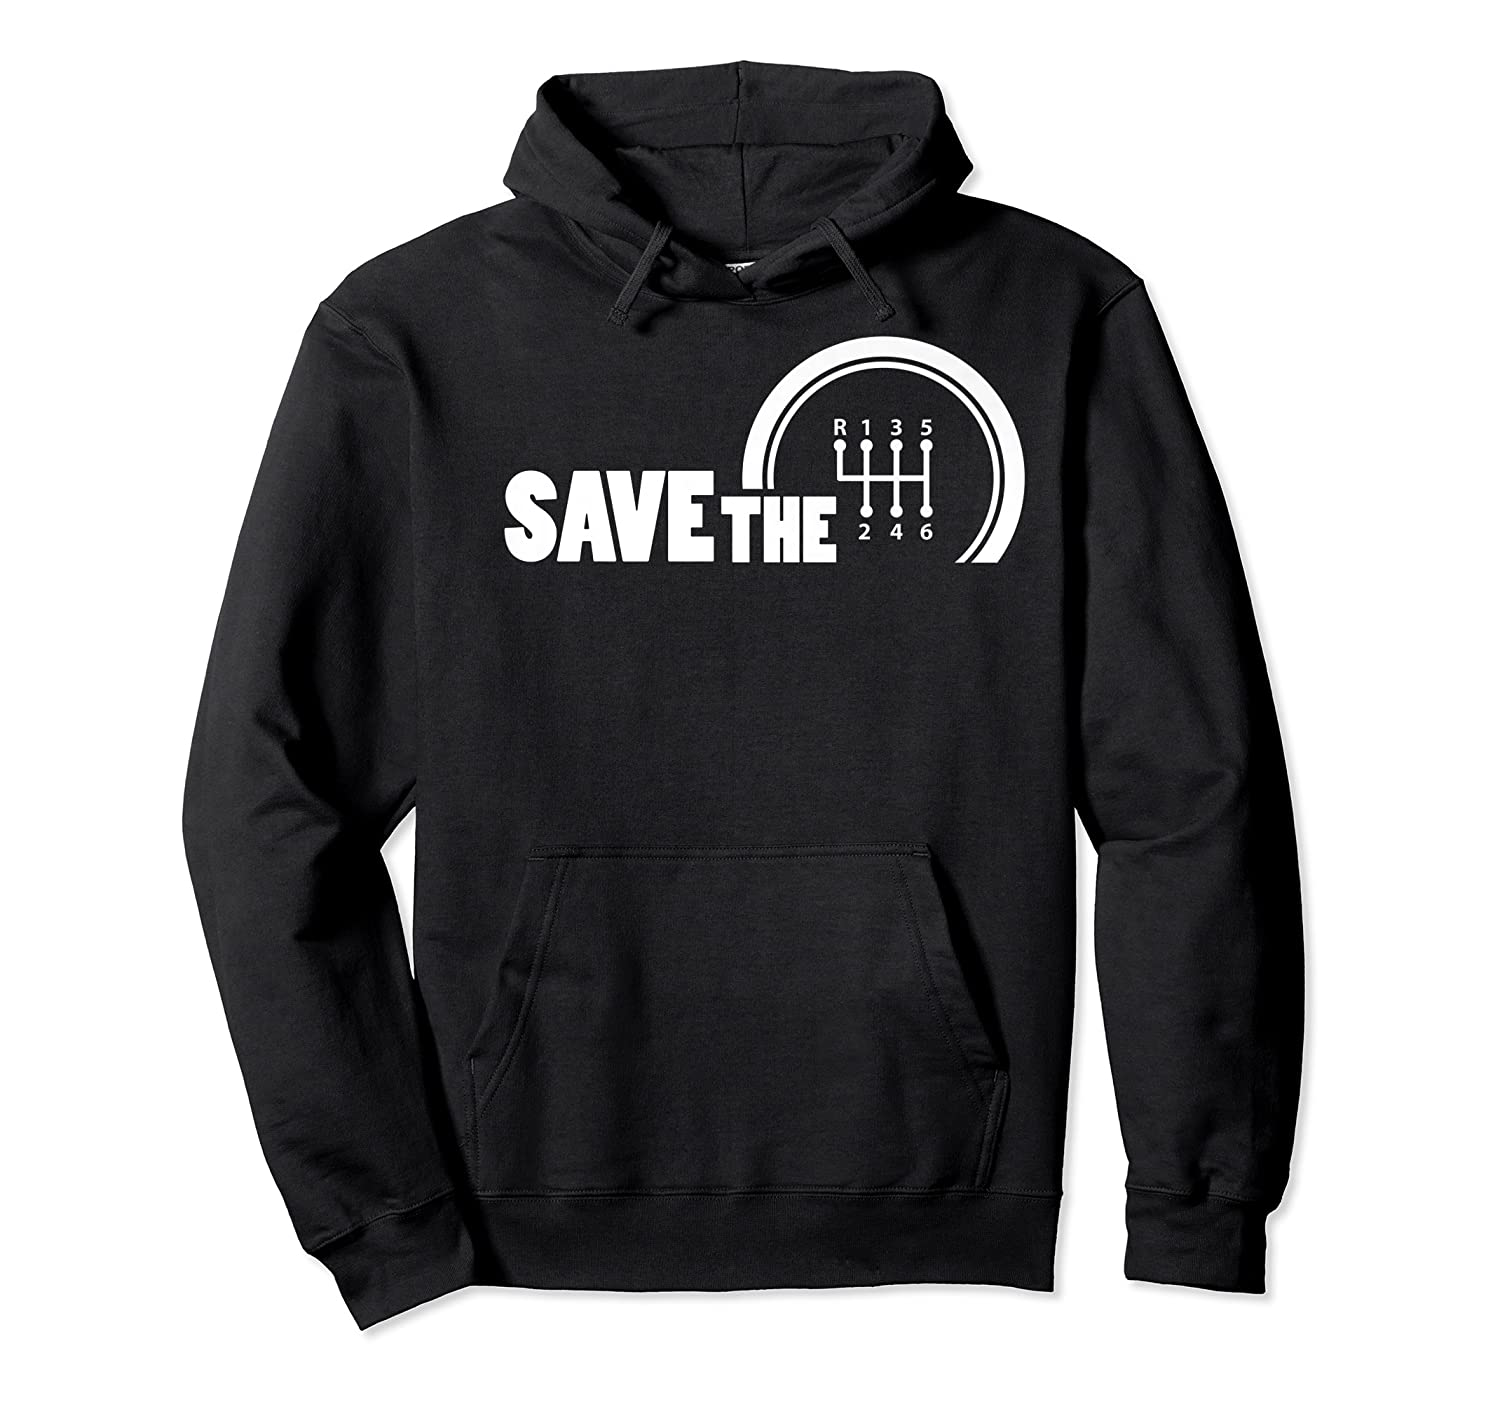 Save The Stick Manual Transmission Three Pedals Gift Shirts Unisex Pullover Hoodie